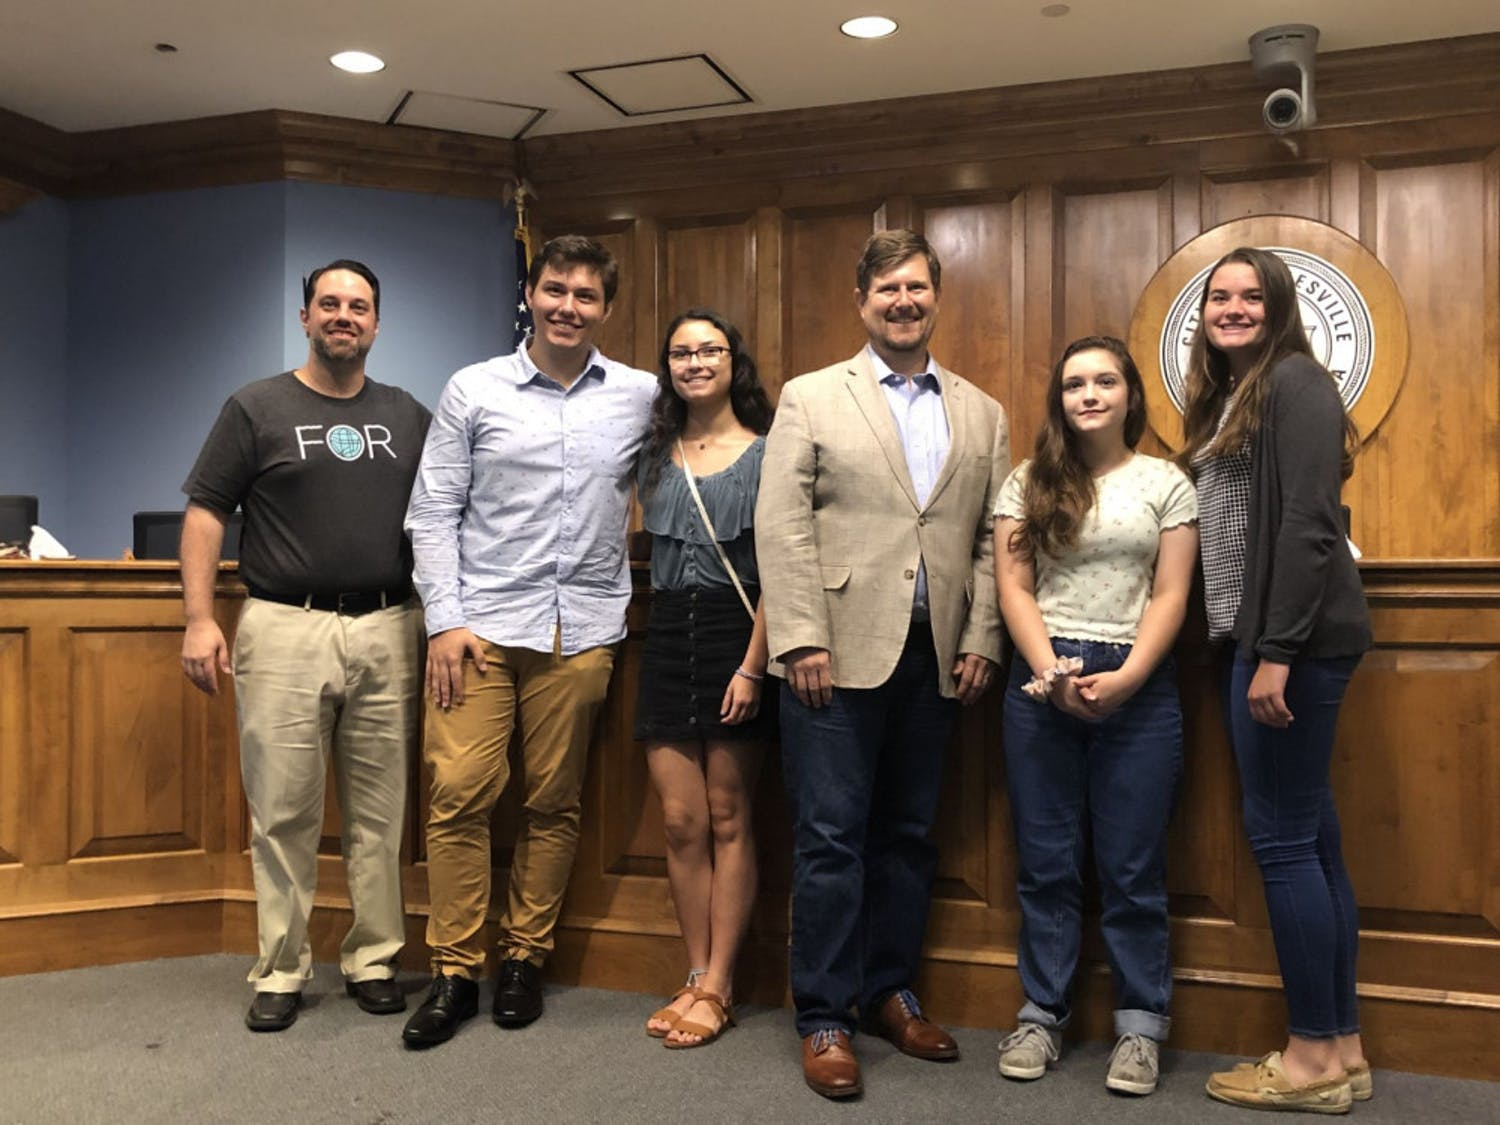 (Left to Right) Joshua Forgione, Matt Mann, Bella Wilson, Mayor Lauren Poe, Keelyn Fife and Alissa Humphrey pose for a photo after presenting their projects in the City Commission room.